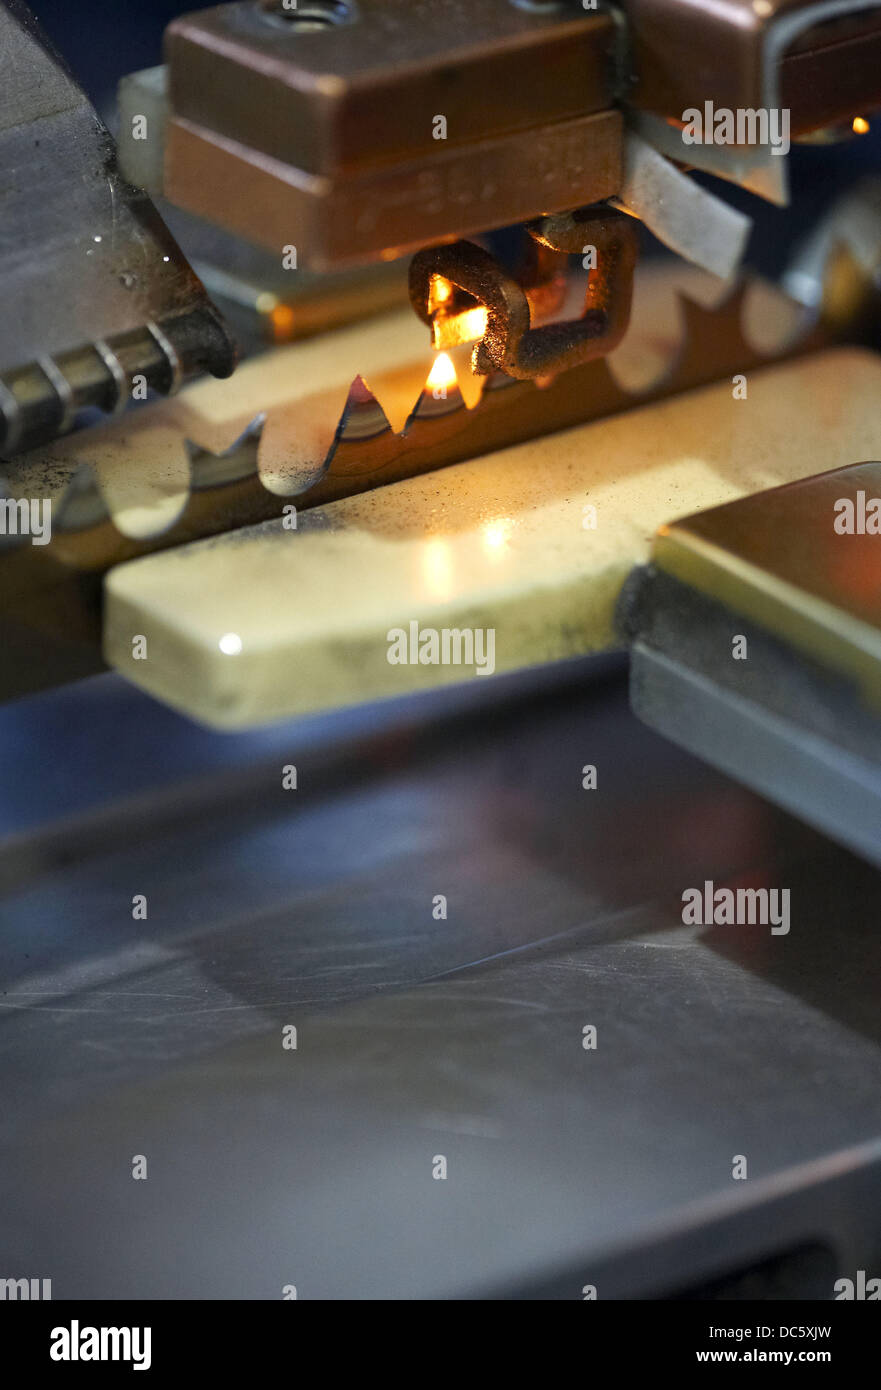 Induction heat treatment, saws manufacturing, hand tool, metallurgy - Stock Image